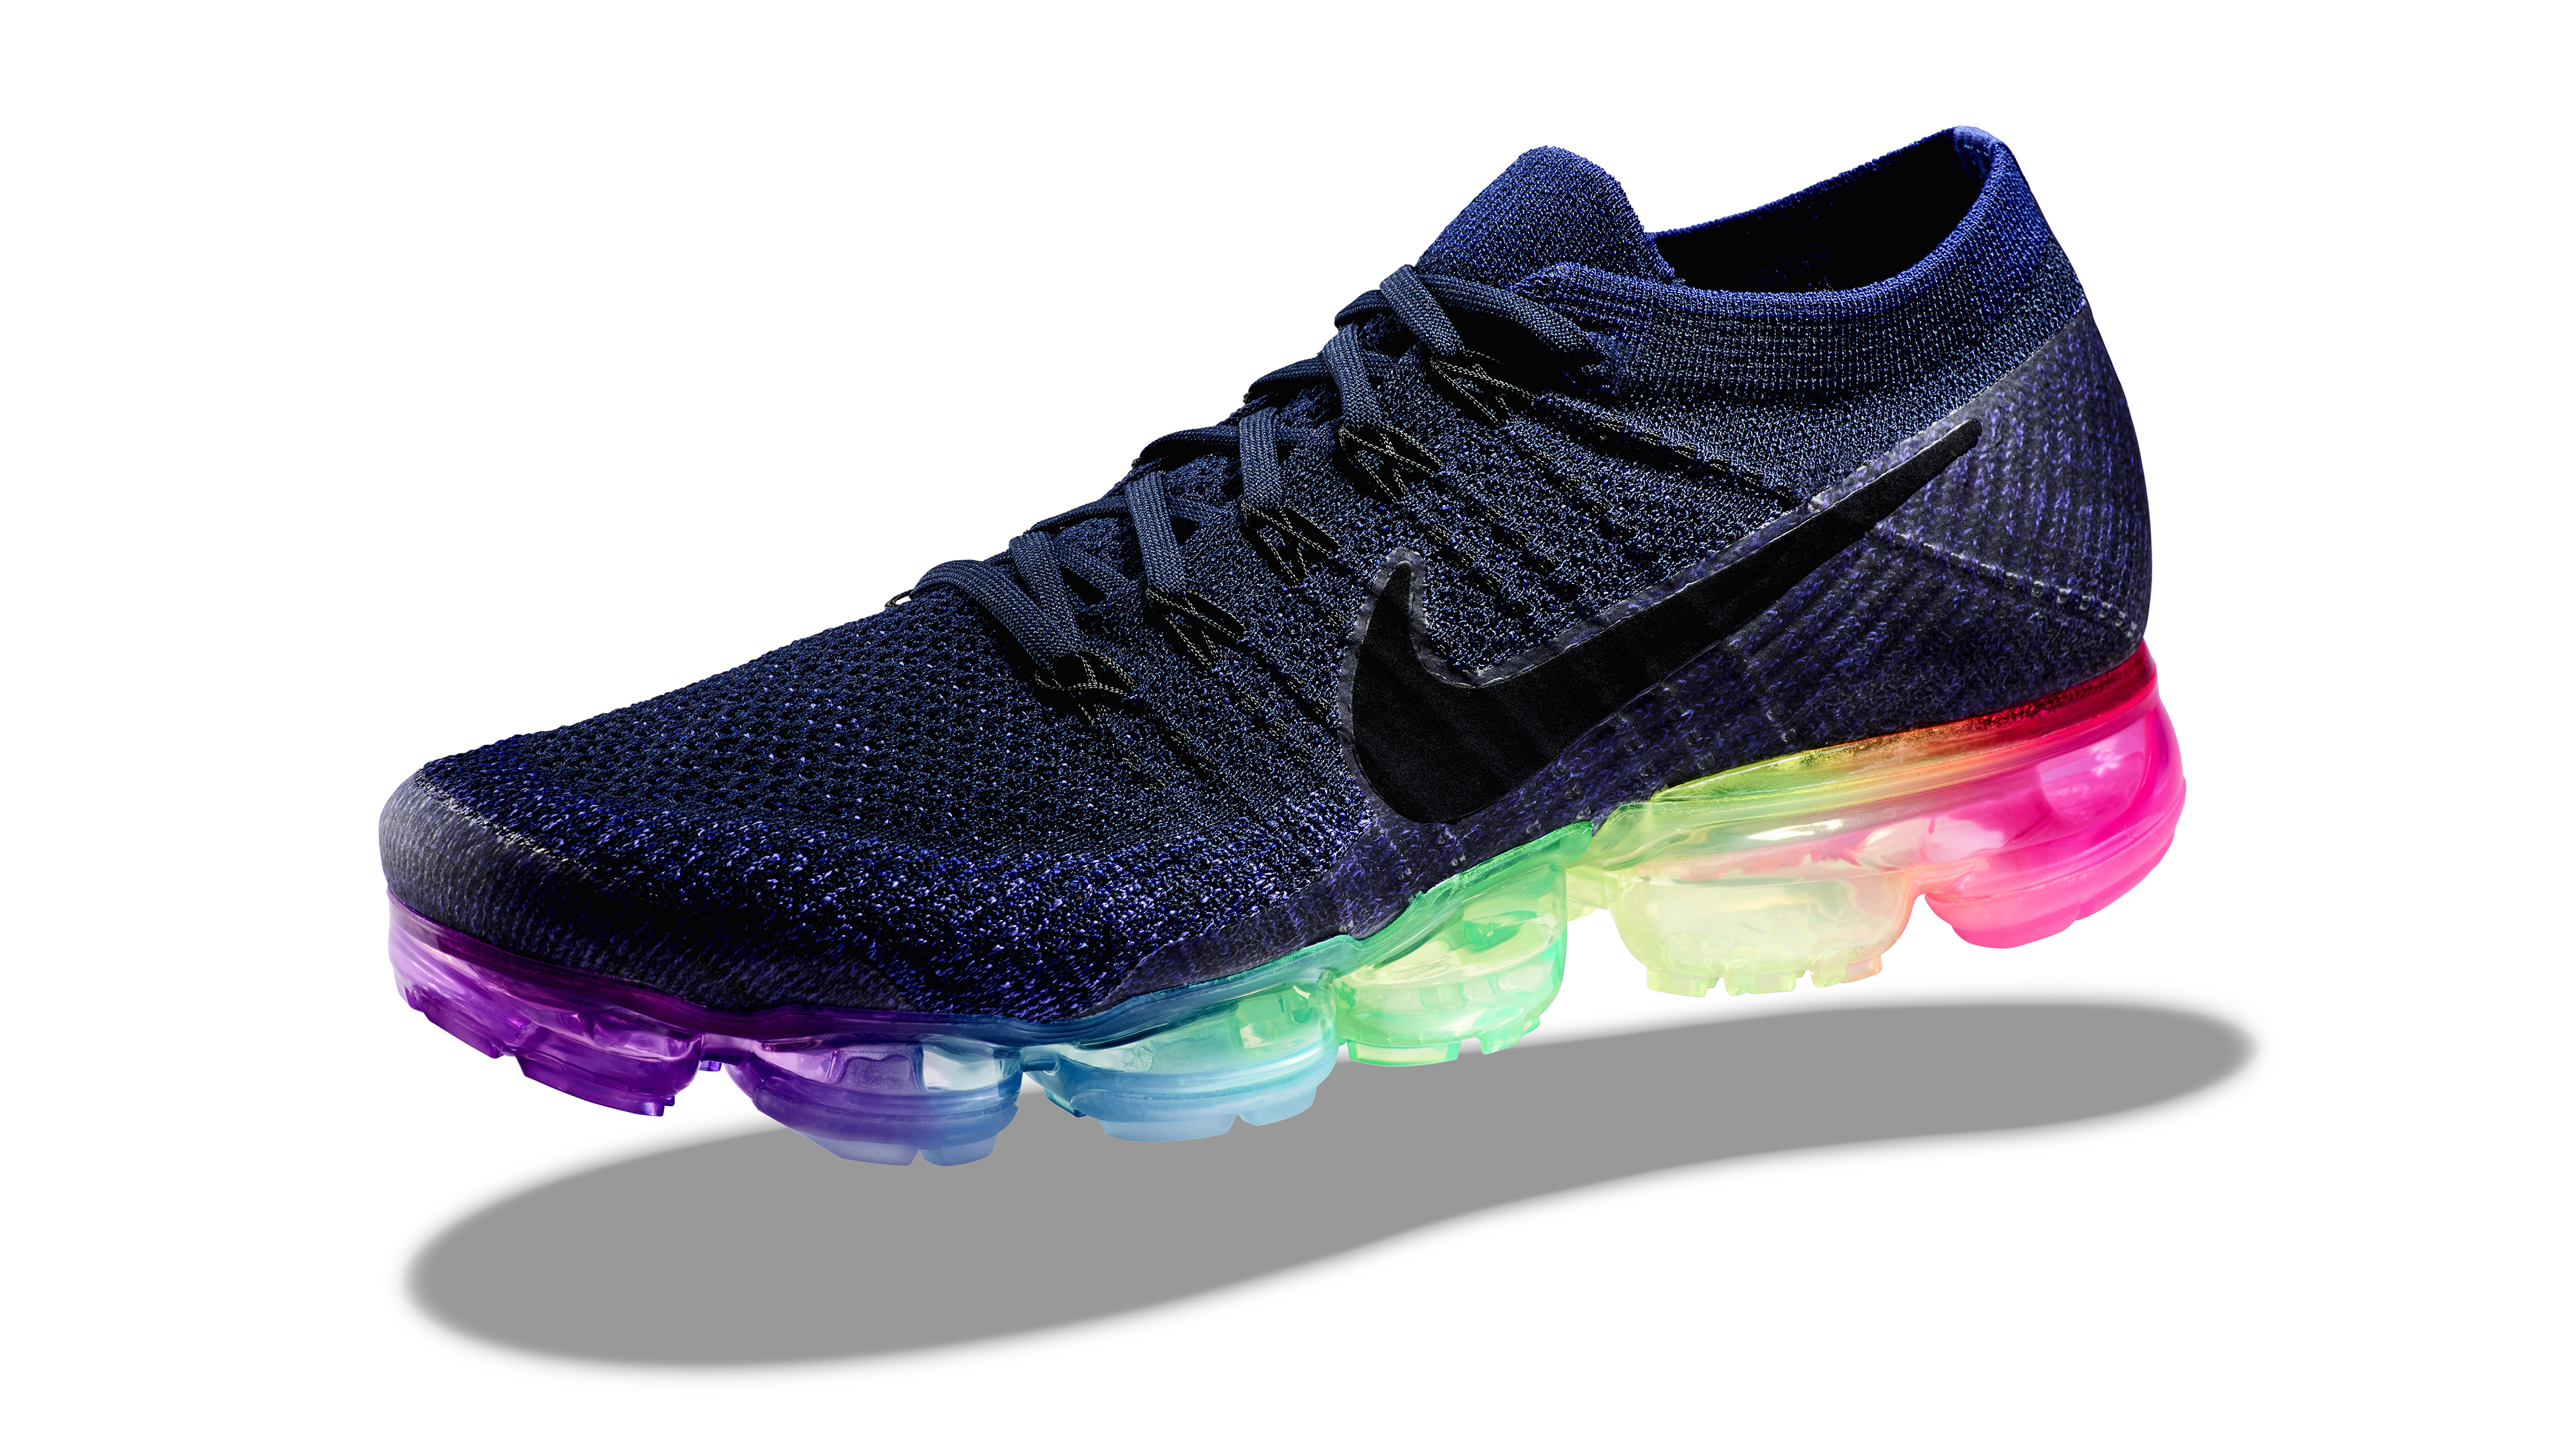 new nike shoes vapor max flyknit multi colors background 843259